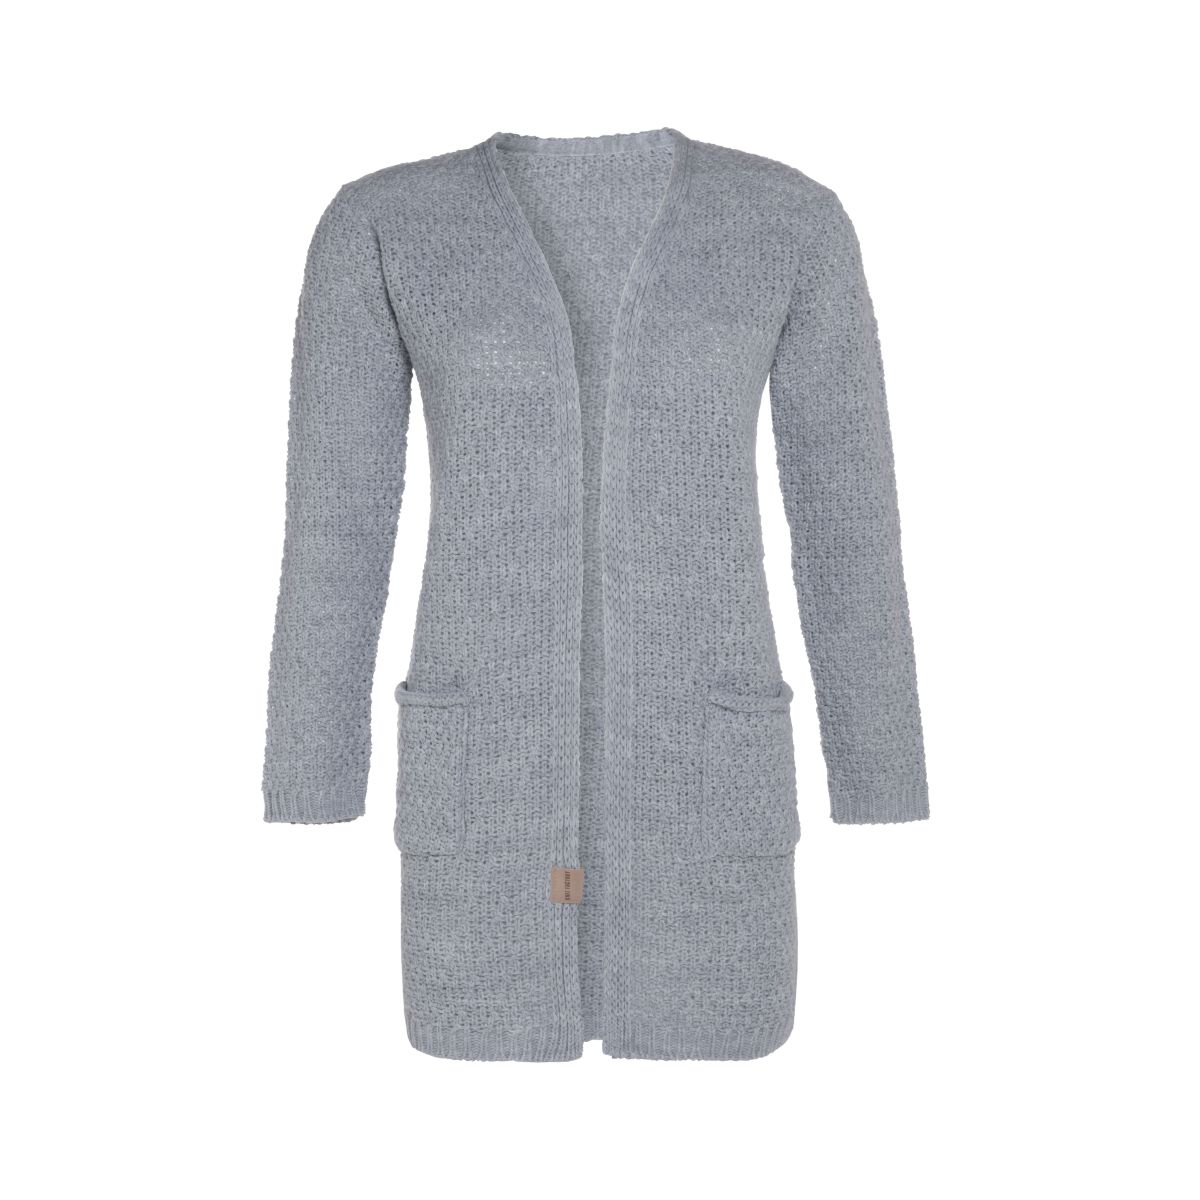 luna knitted cardigan light grey 3638 with side pockets